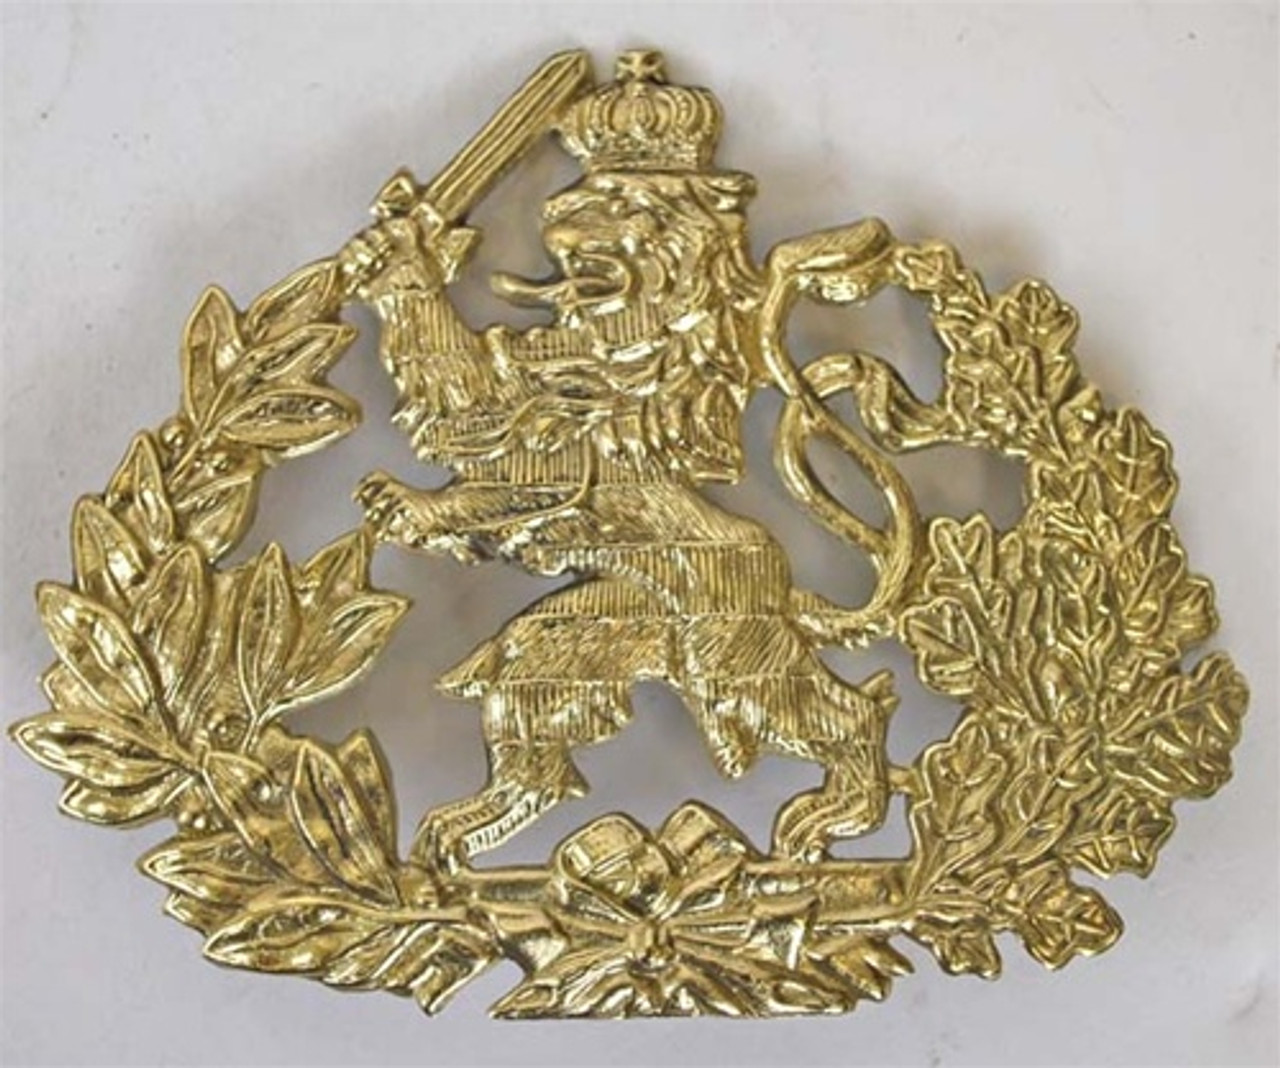 Hesse Pickelhaube Plate from Hessen Antique